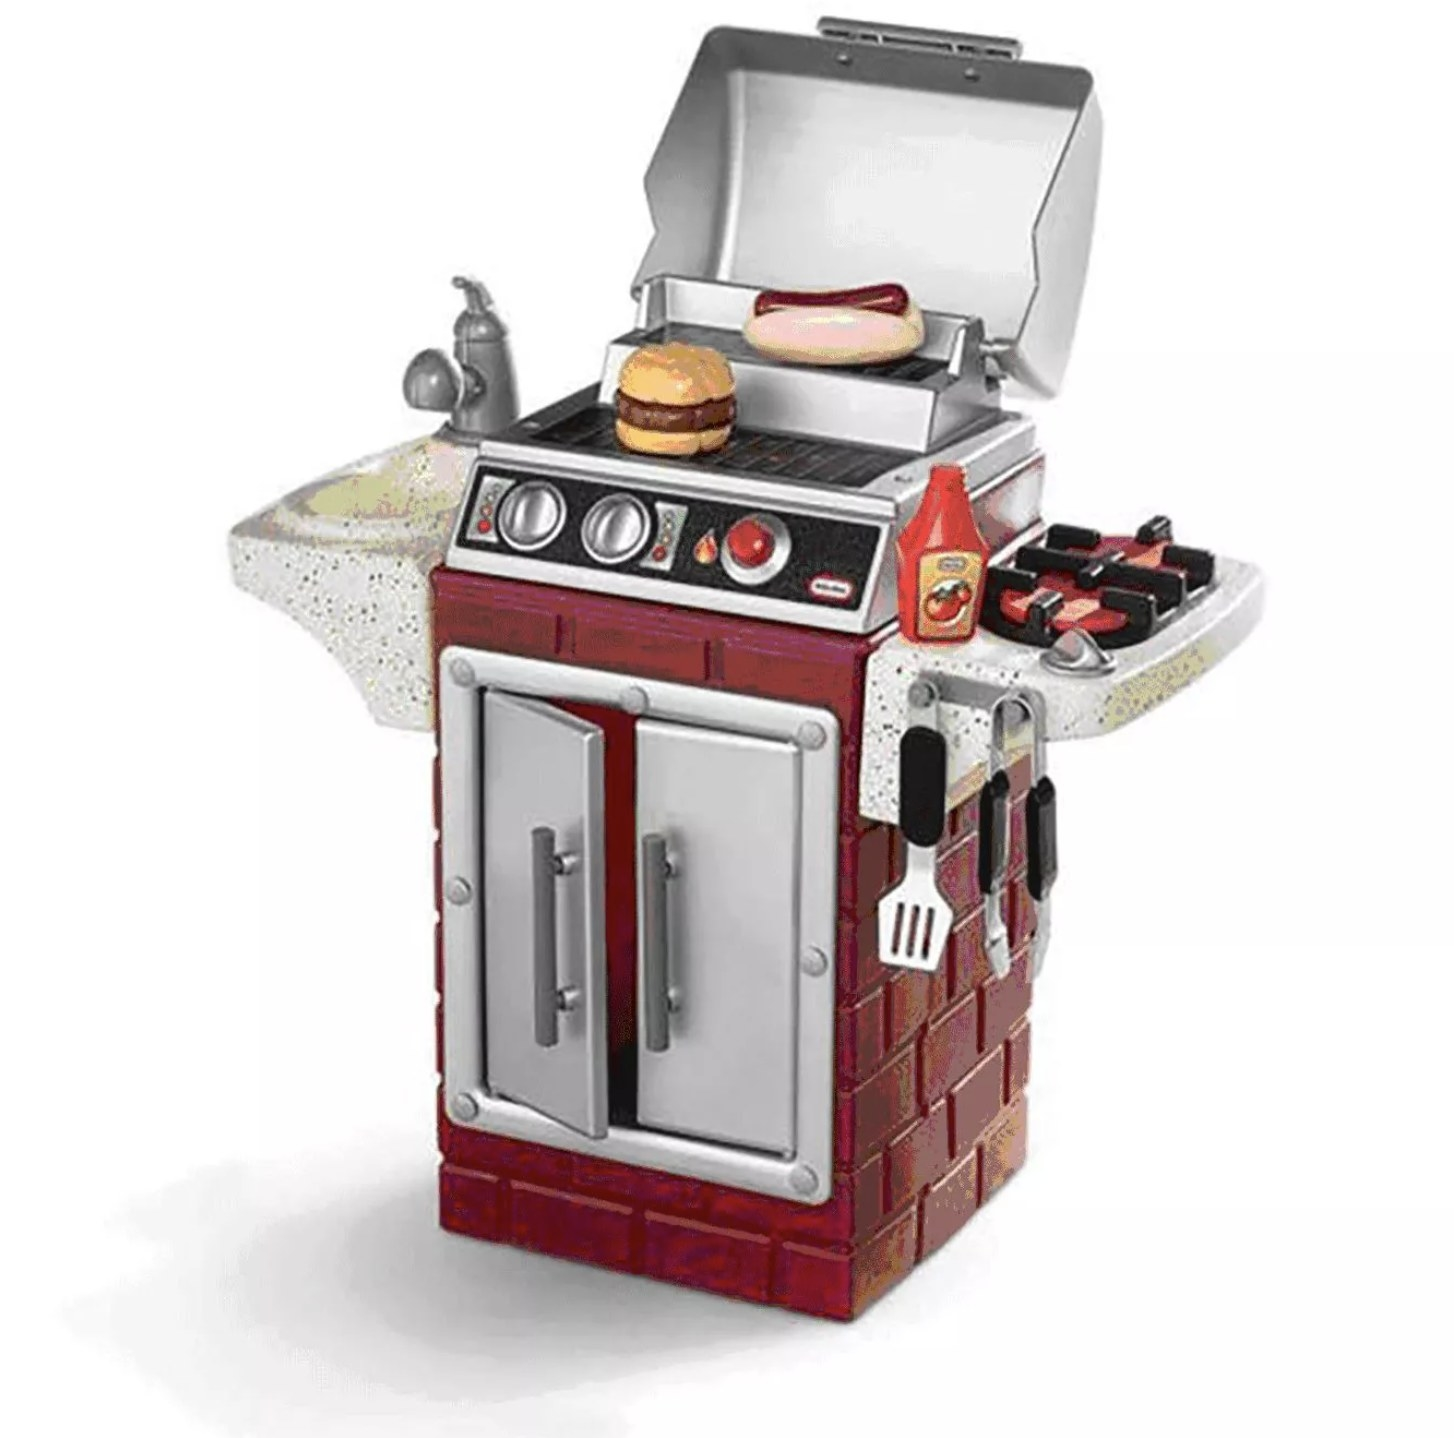 The BBQ toy set